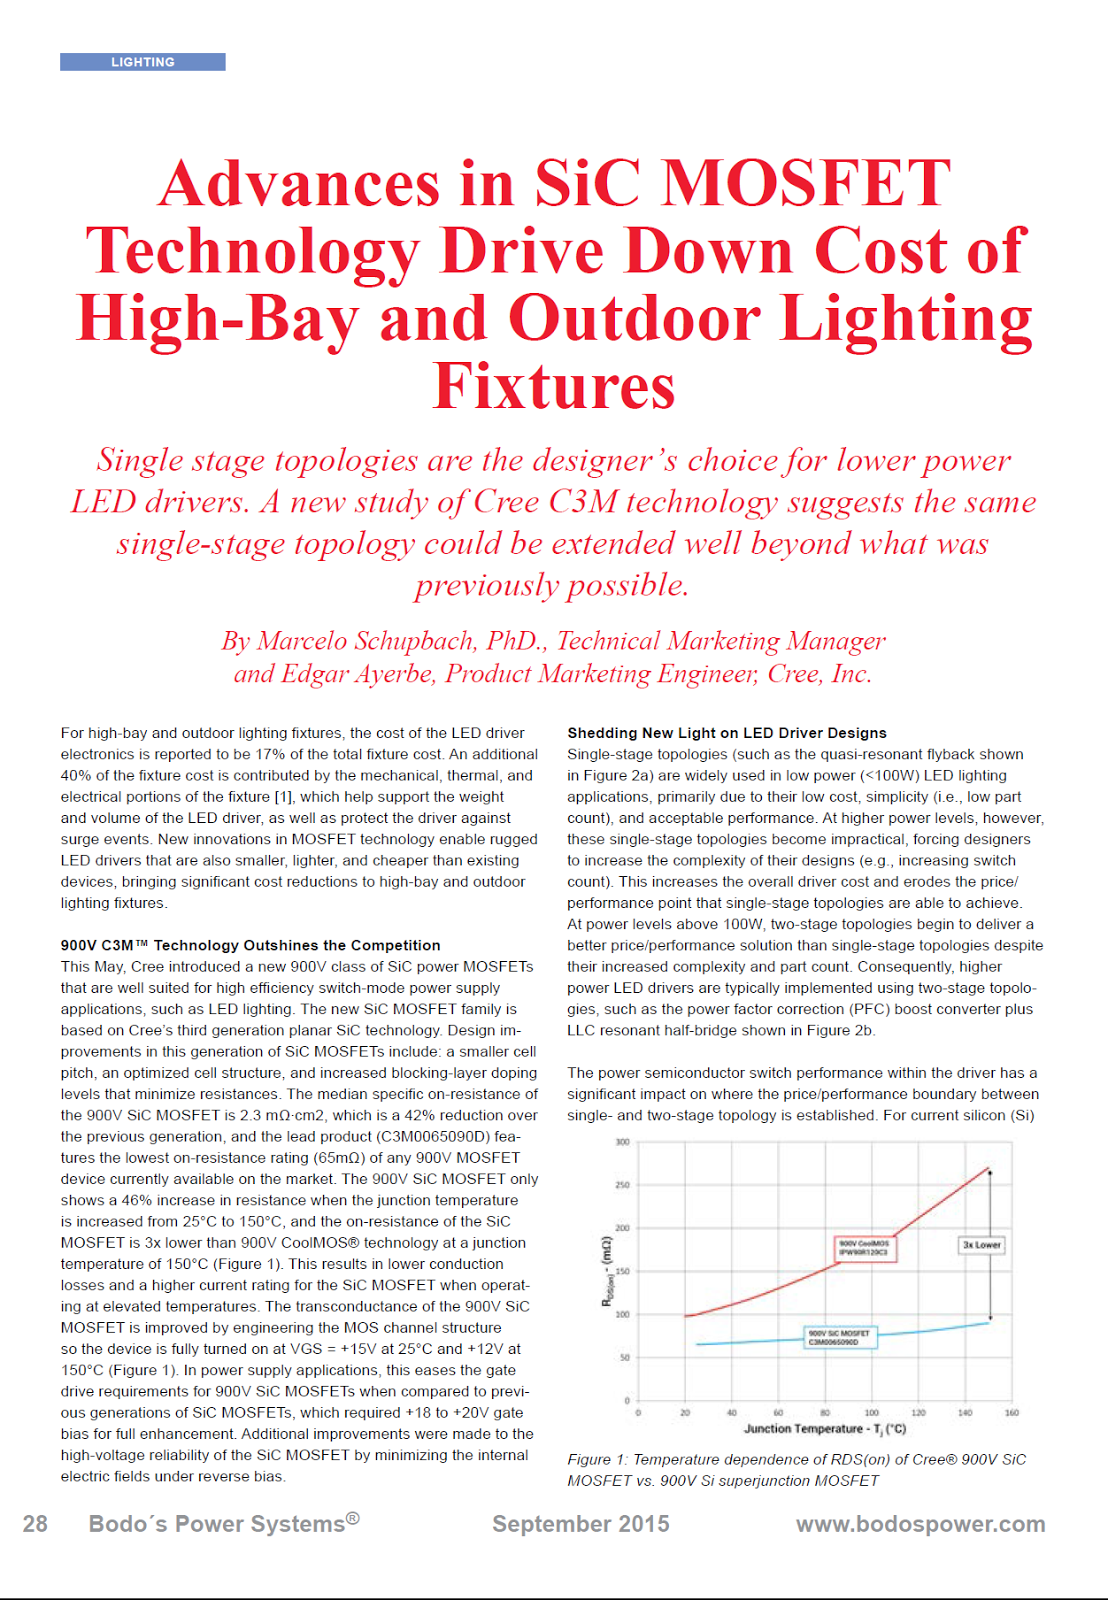 Power Electronics Electrnica De Potencia Leistungselektronik S1600 Surgeprotectedleddrivercircuittransformerlesspng Advances In Sic Mosfet Technology Drive Down Cost Of High Bay And Outdoor Lighting Fixtures By Marcelo Schupbach Phd Technical Marketing Manager